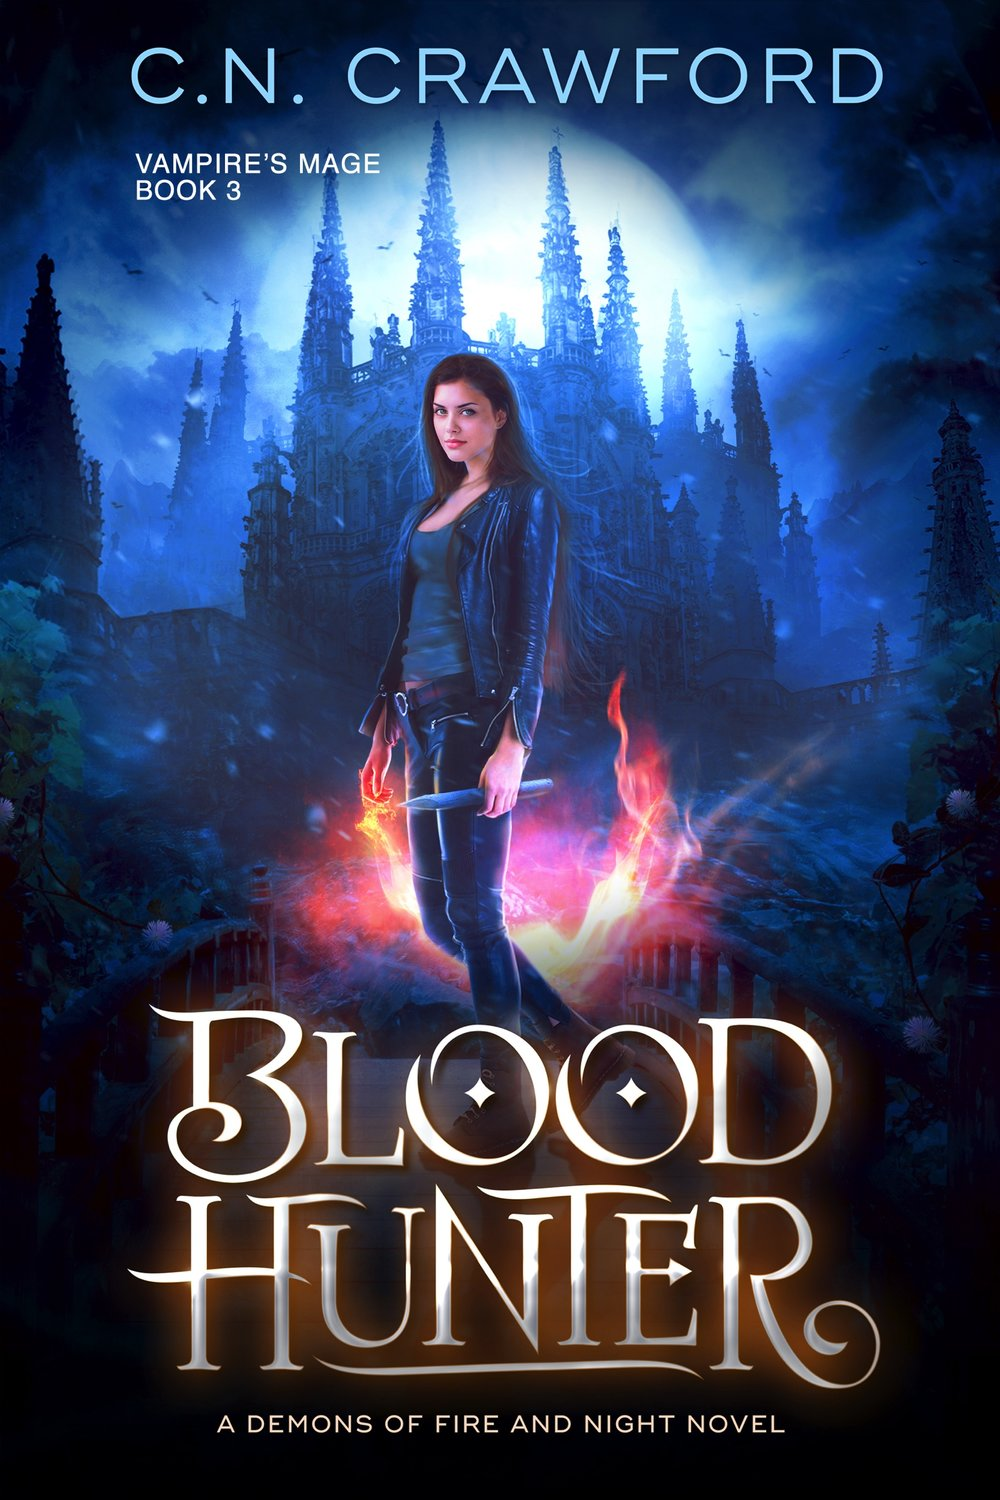 Book 3: Blood Hunter